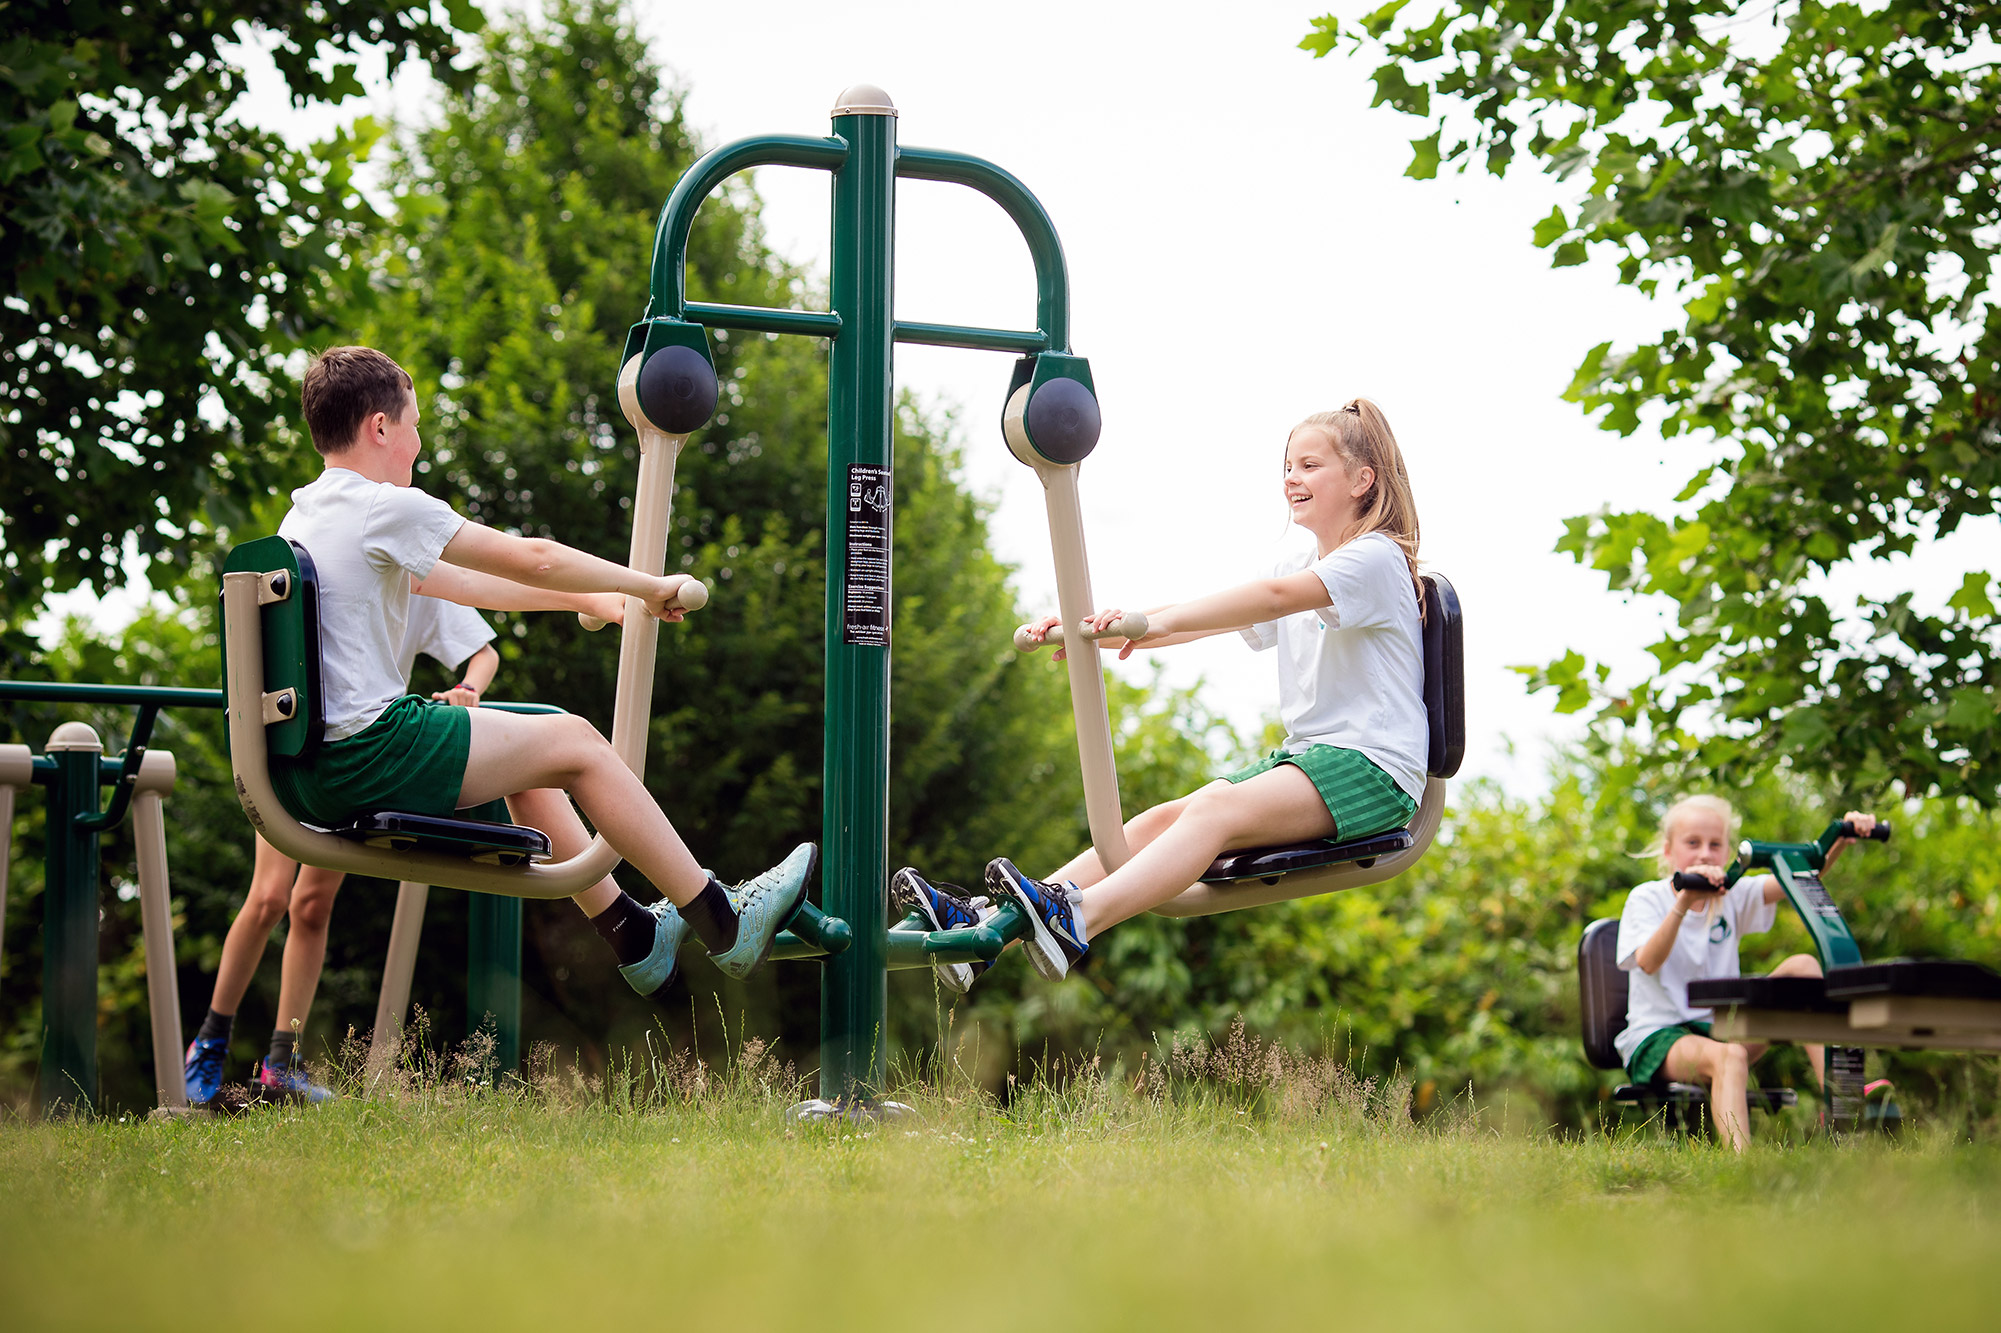 childrens leg press outdoor gym equipment